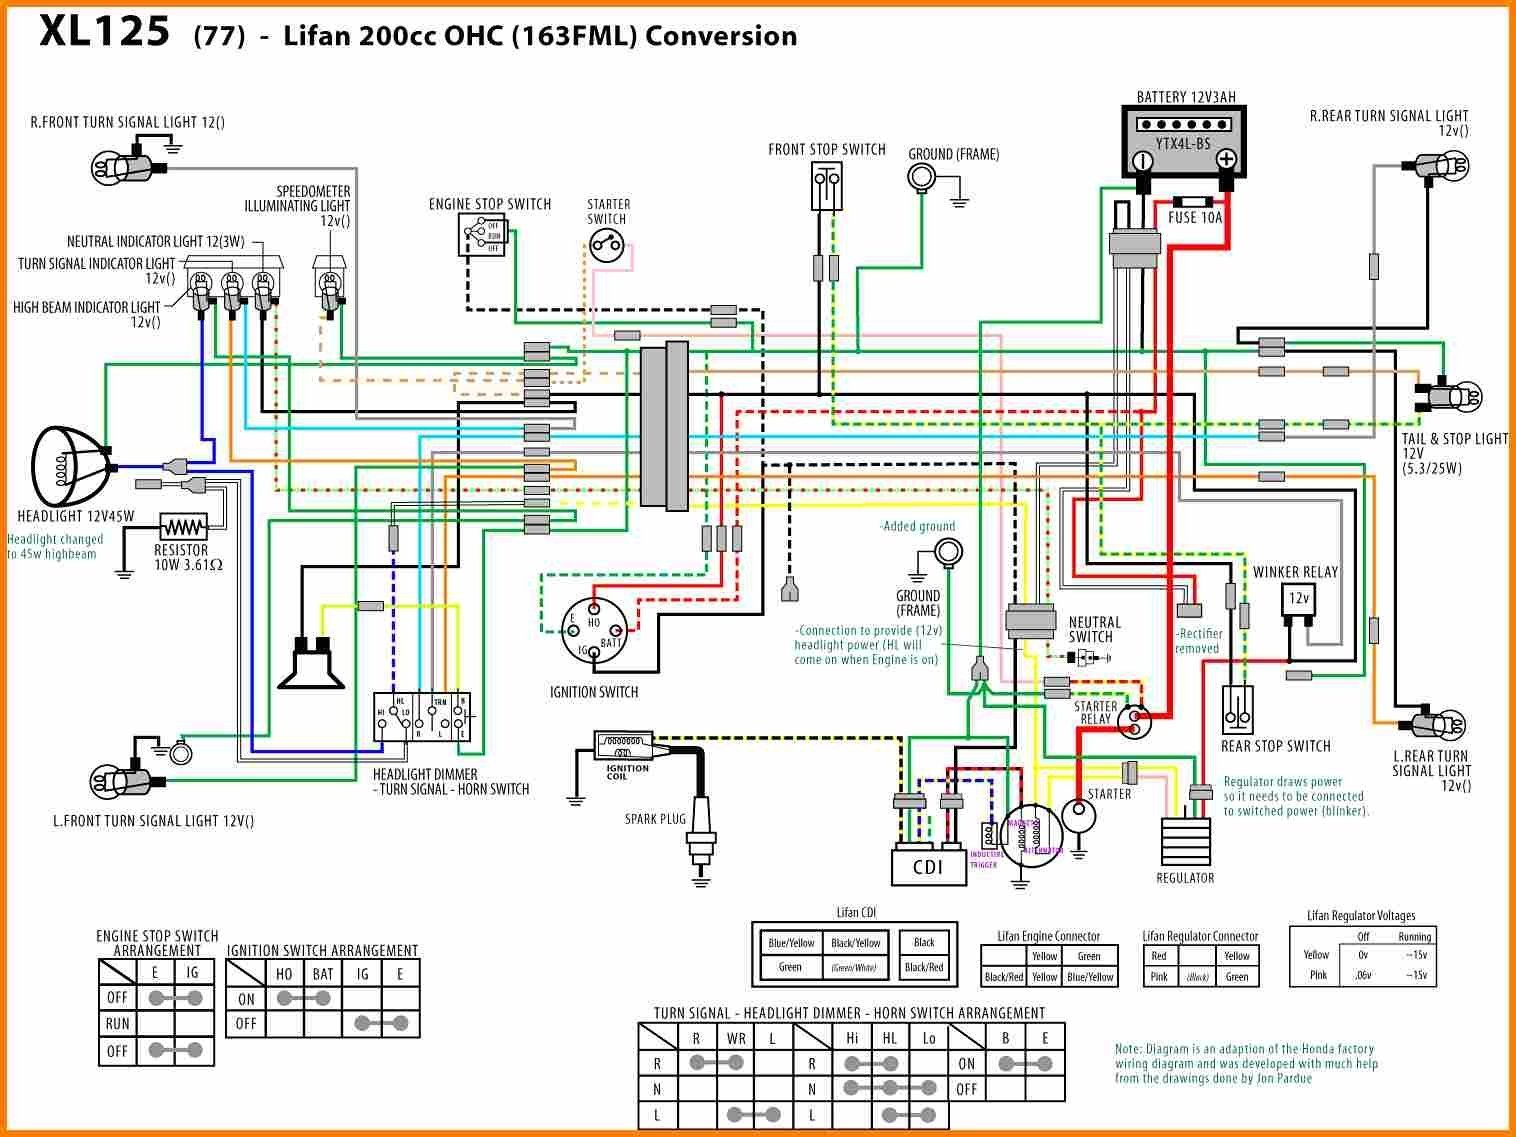 lifan cc engine diagram lifan cc wiring diagram